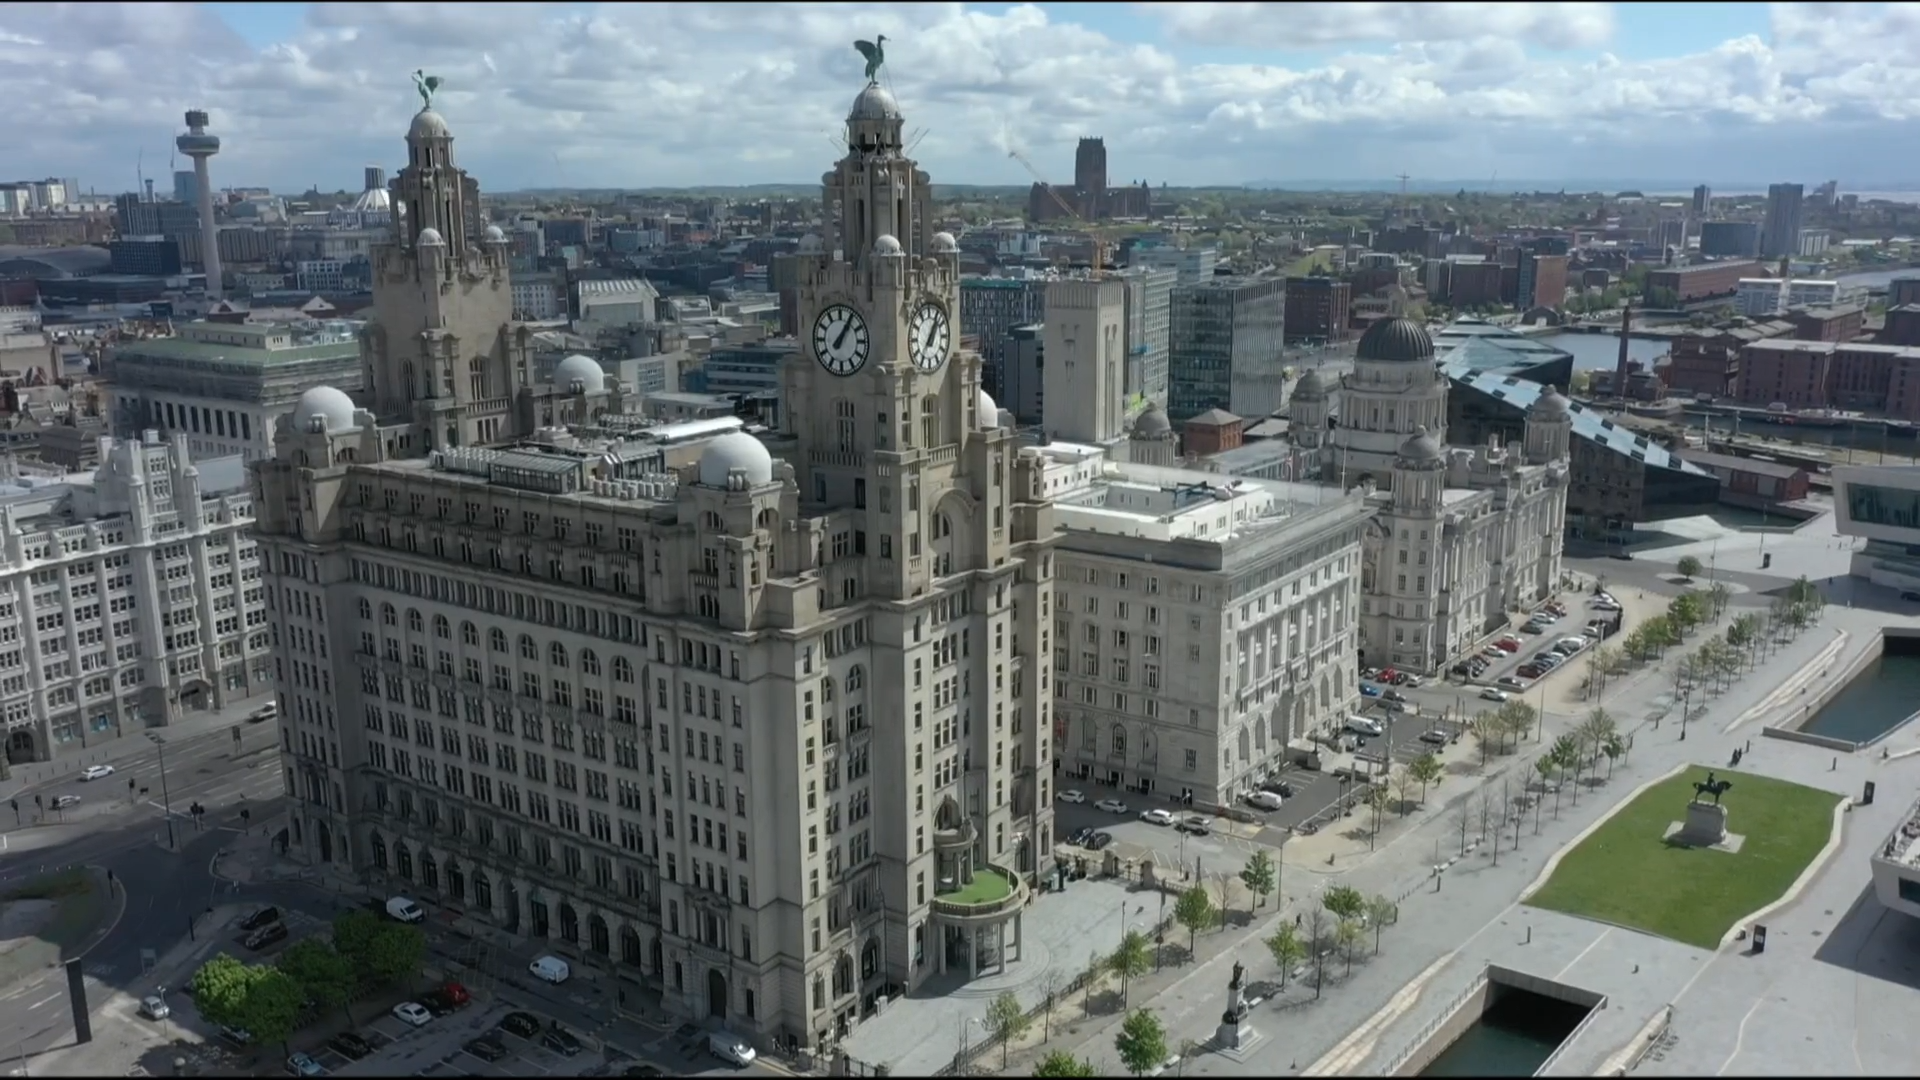 Liverpool stripped of its world heritage status by Unesco